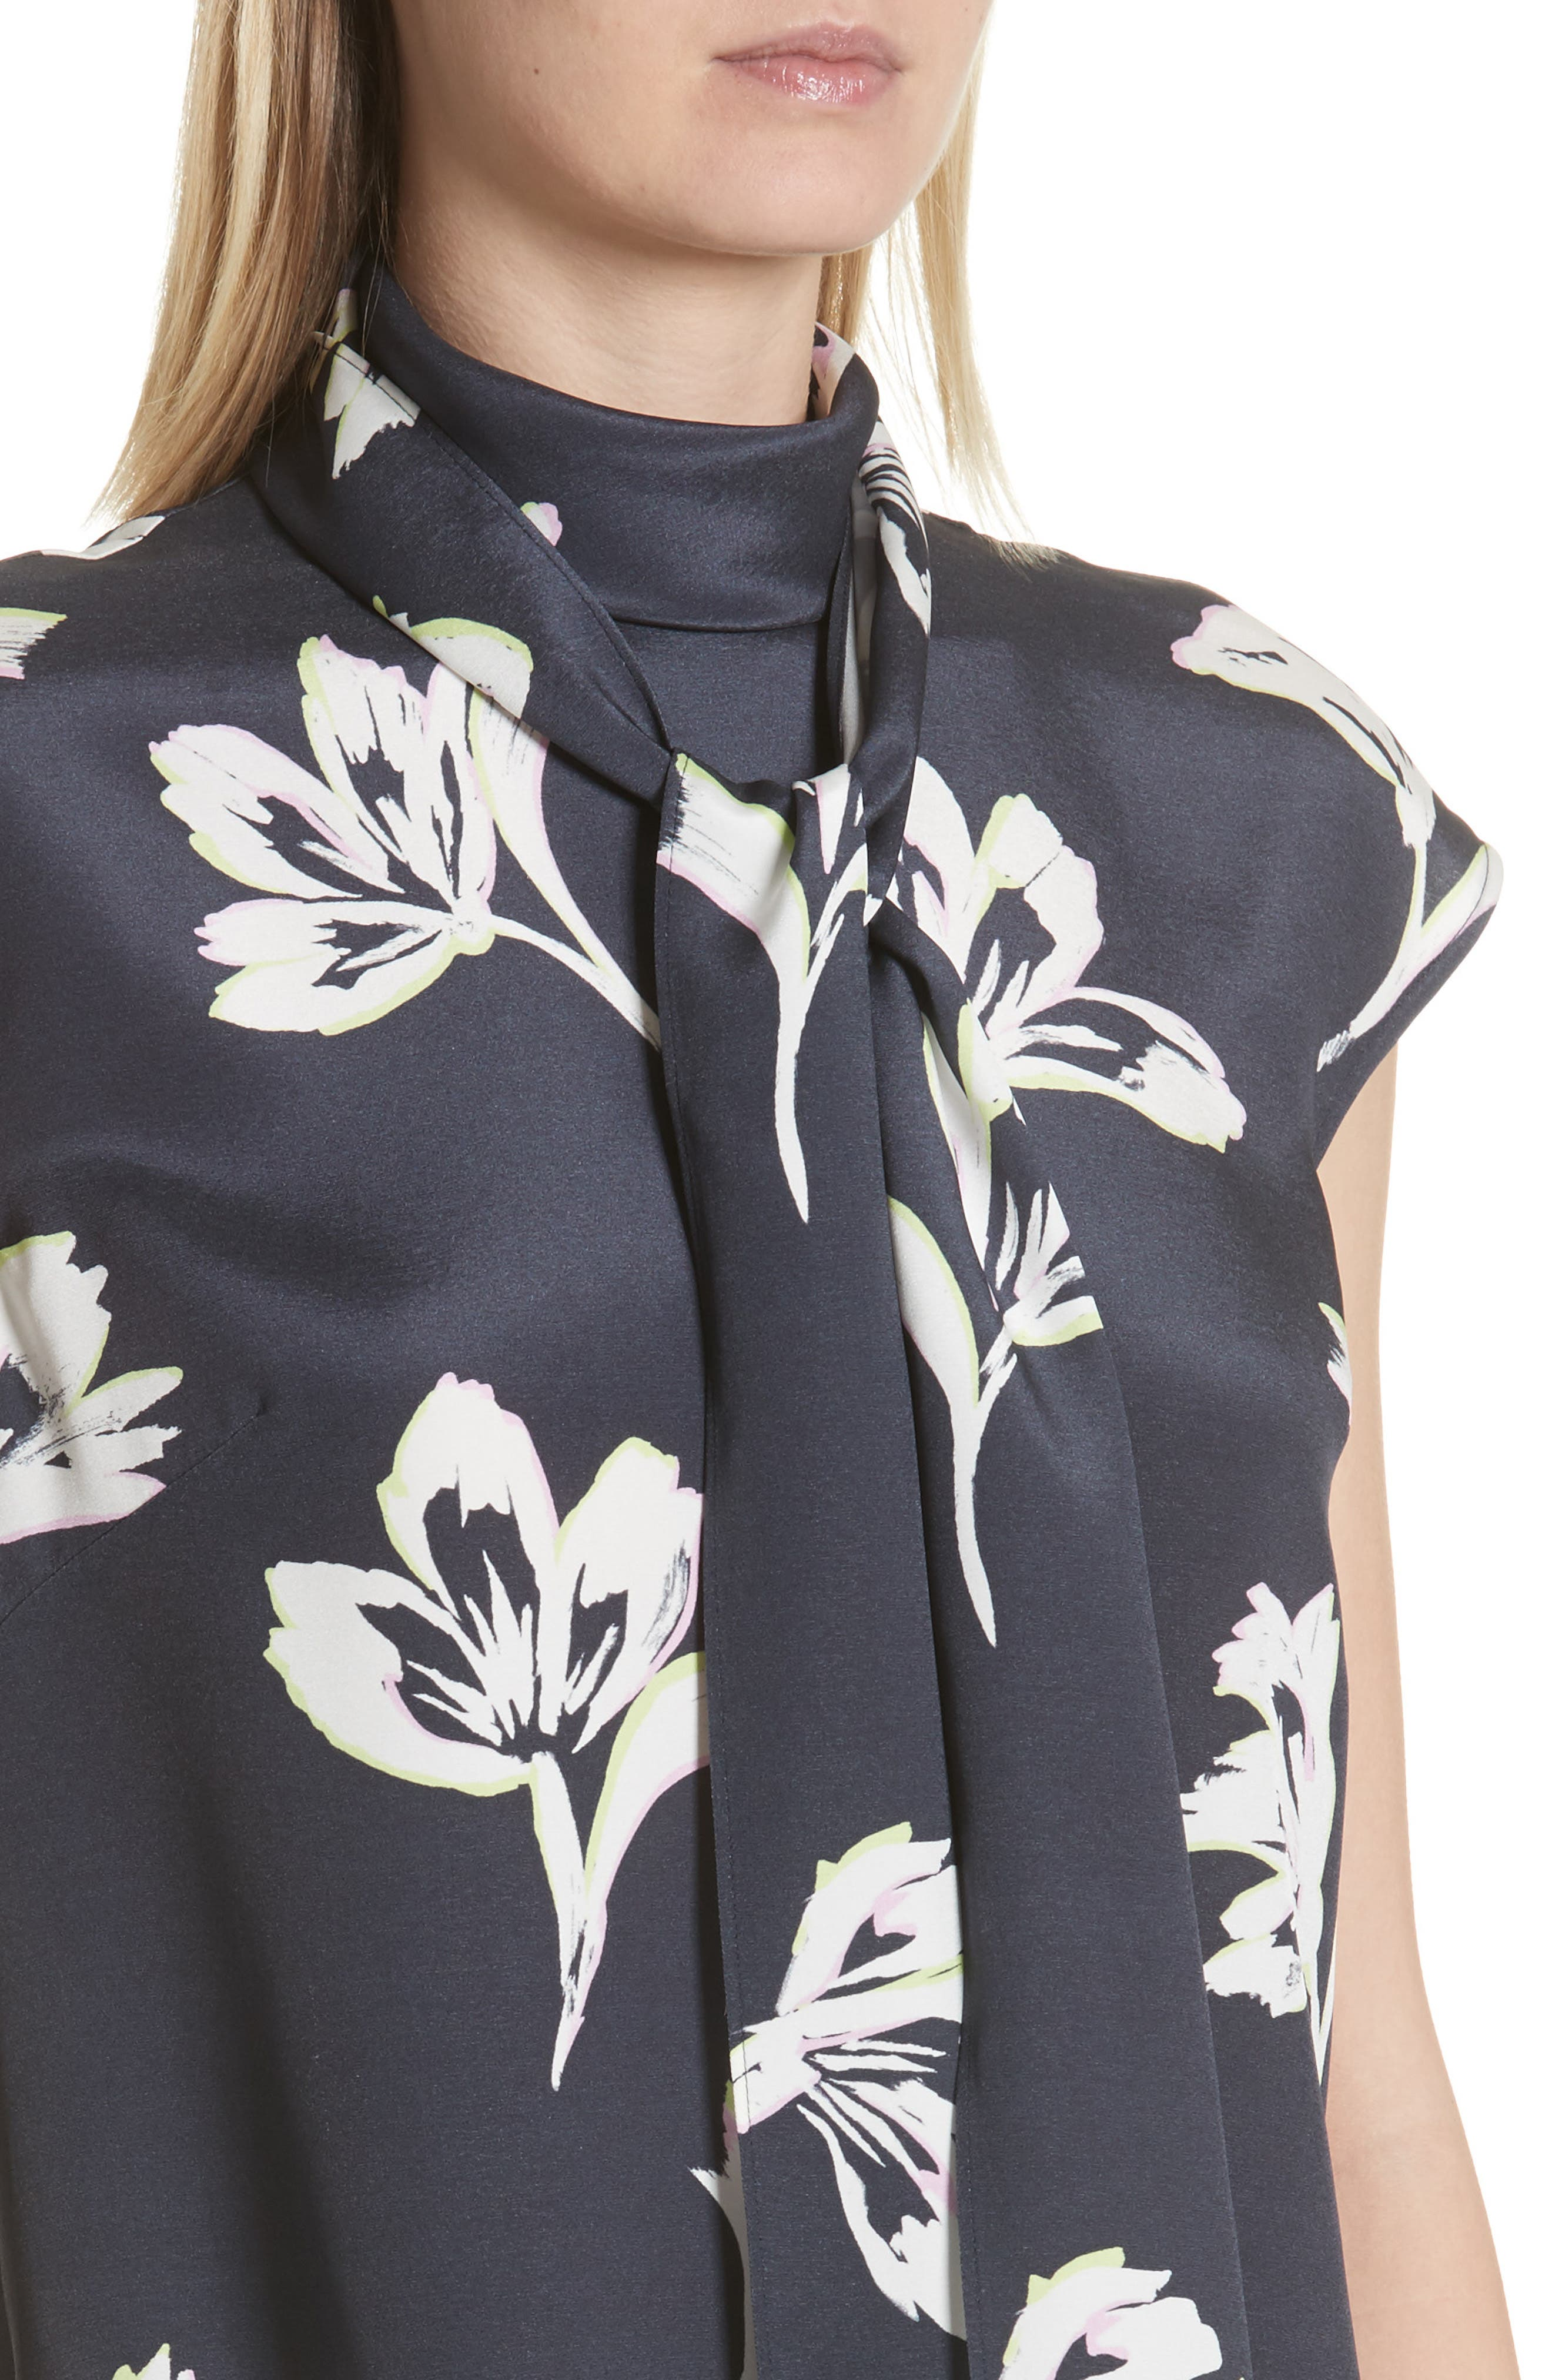 Falling Flower Print Stretch Silk Top,                             Alternate thumbnail 7, color,                             Anthracite Multi